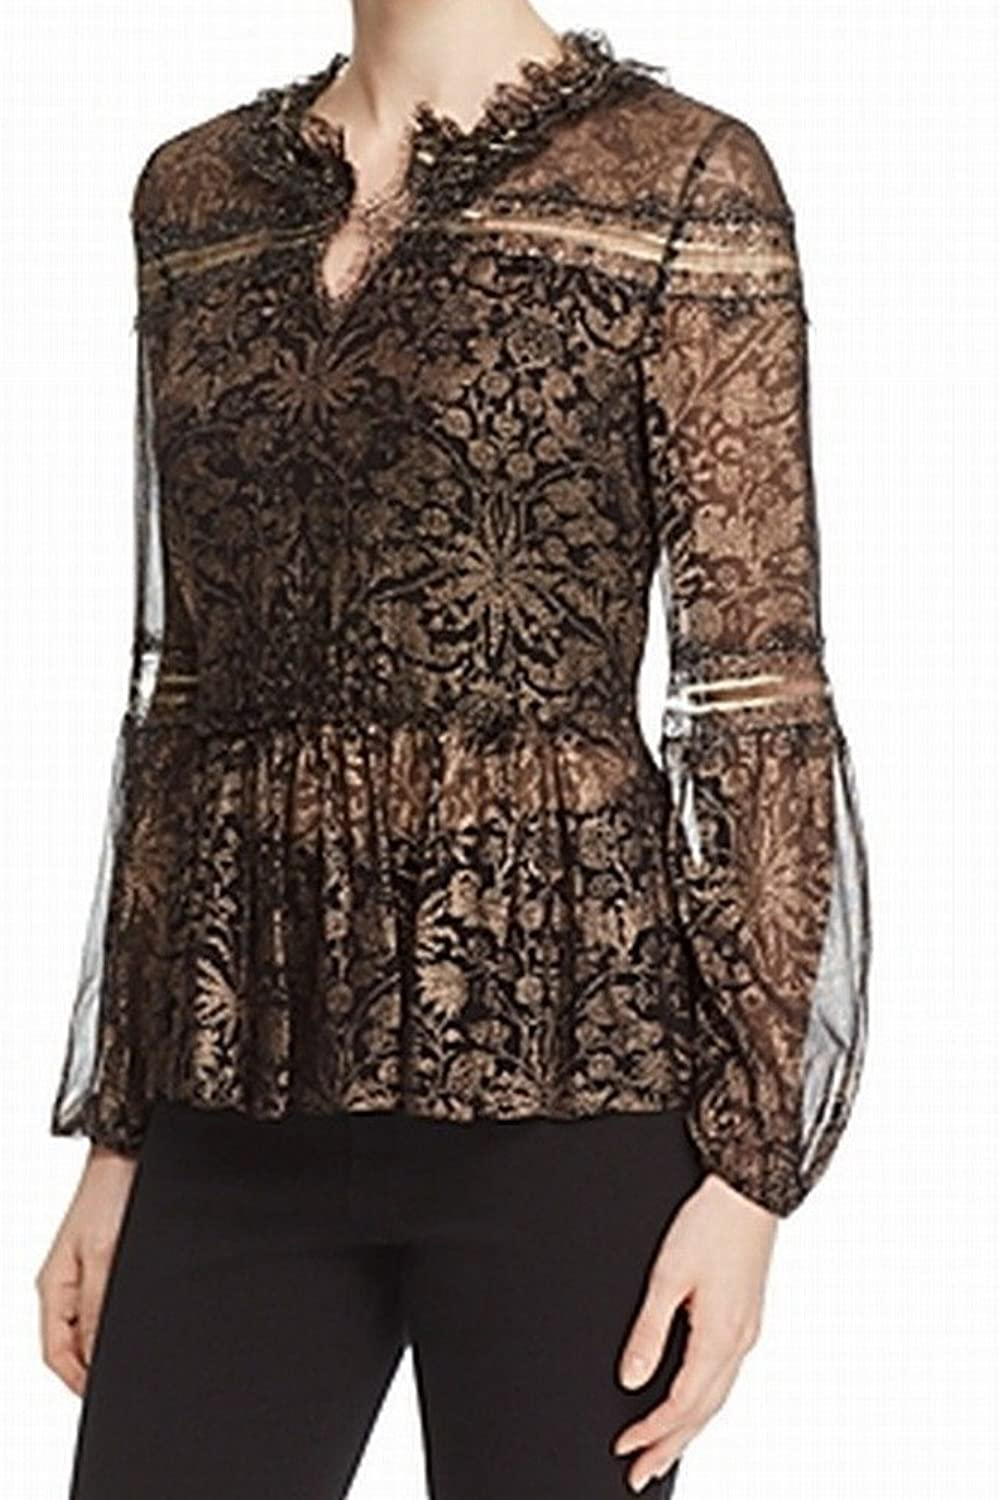 Tahari Womens Black Ruffled Lace Floral Long Sleeve V Neck Peasant Top US Size  M